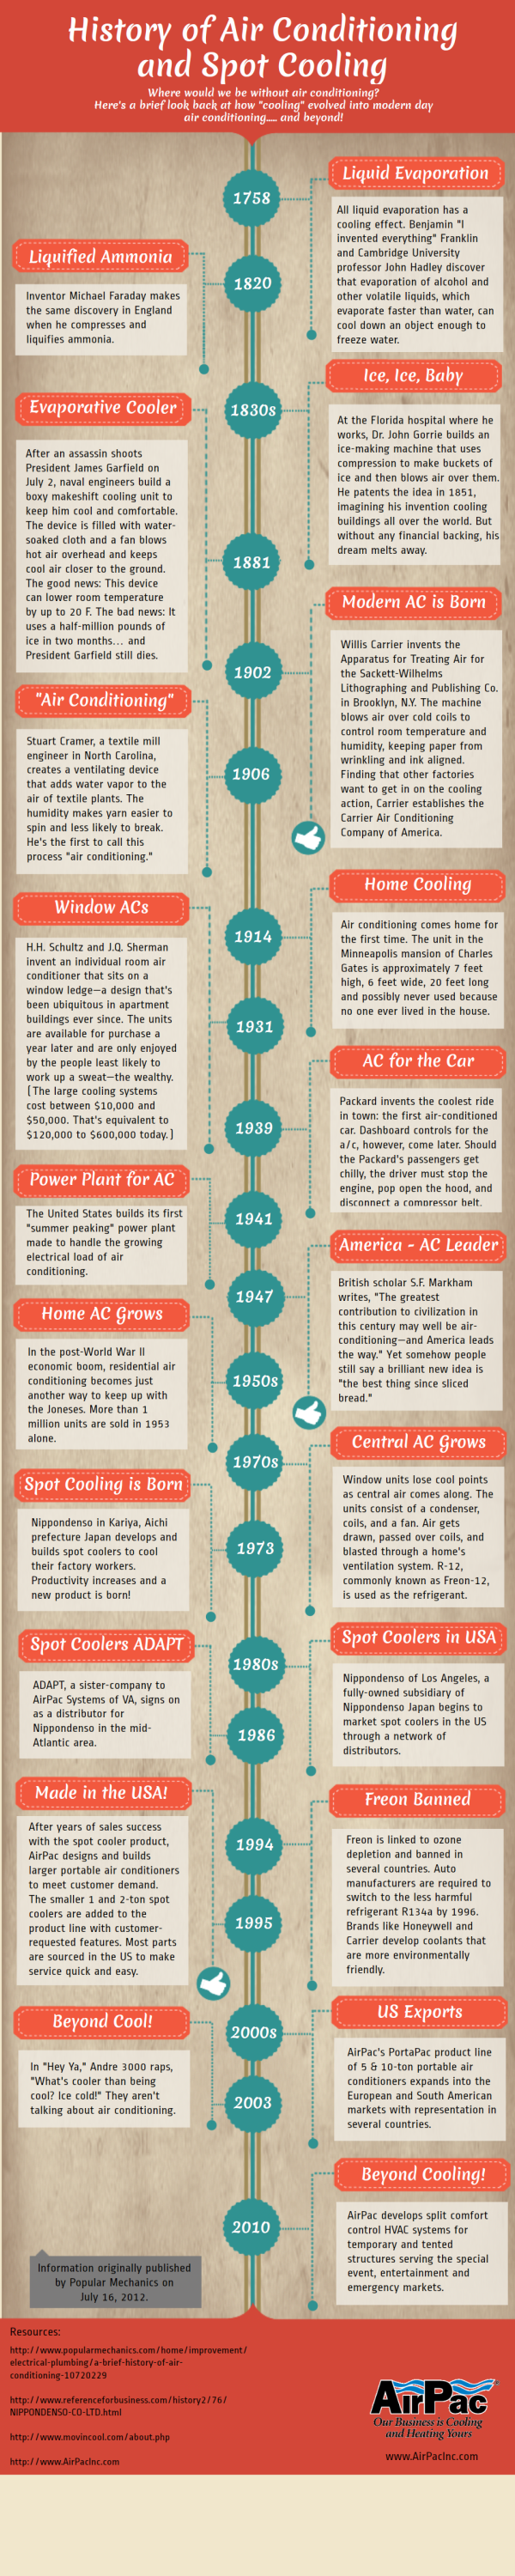 History Of Air Conditioning And Spot Cooling Infographic